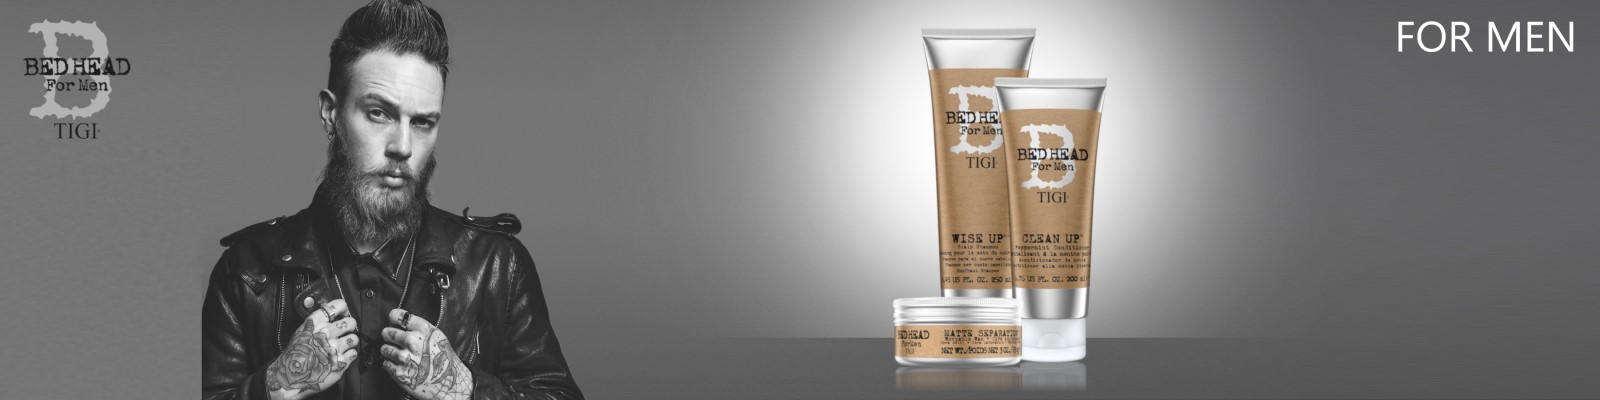 Tigi For Men